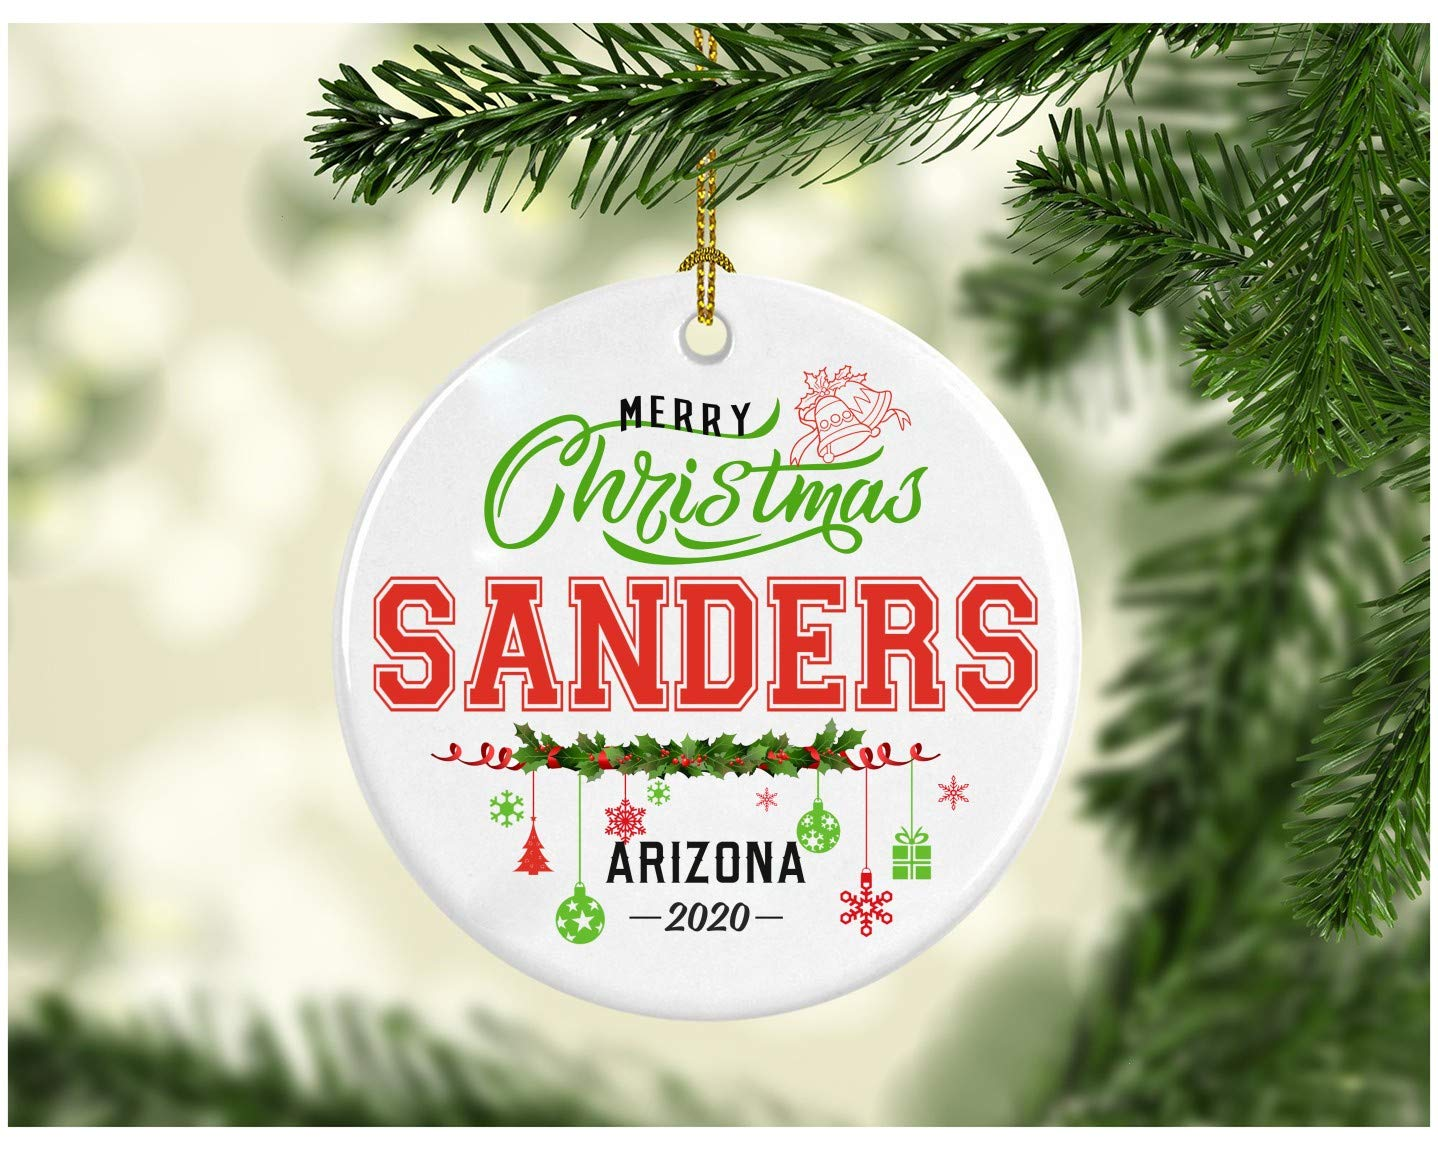 Arizona When Does Christmas Break Start 2020 Amazon.com: Christmas Decorations Tree Ornament   Gifts Hometown